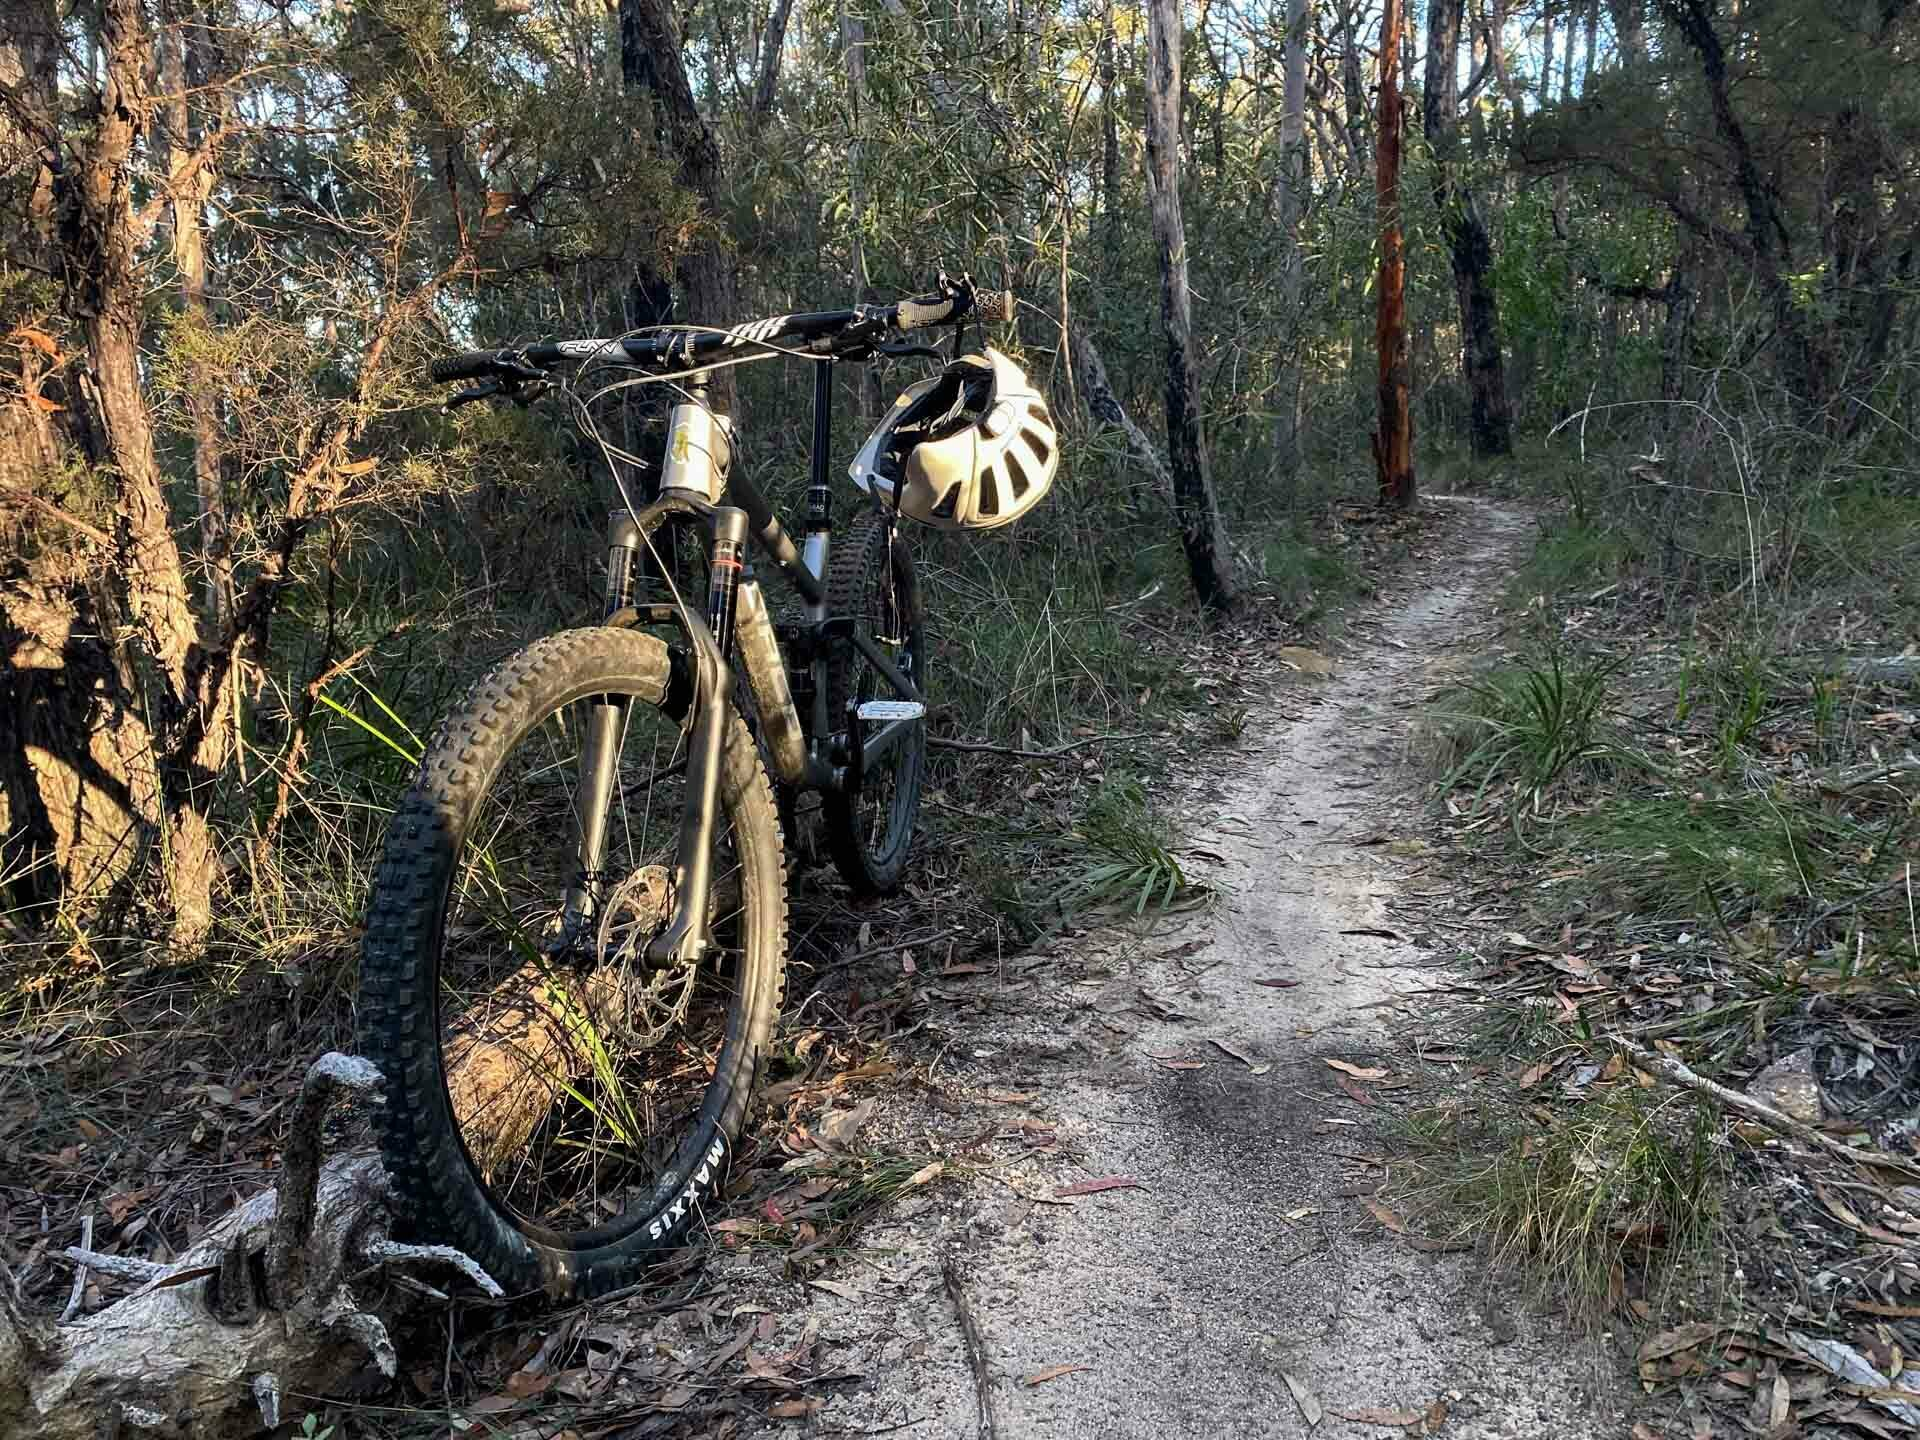 Specialized Ambush with ANGi Mountain Bike Helmet – Gear Review, tim ashelford, lawson trails, blue mountains, nsw, norco sight